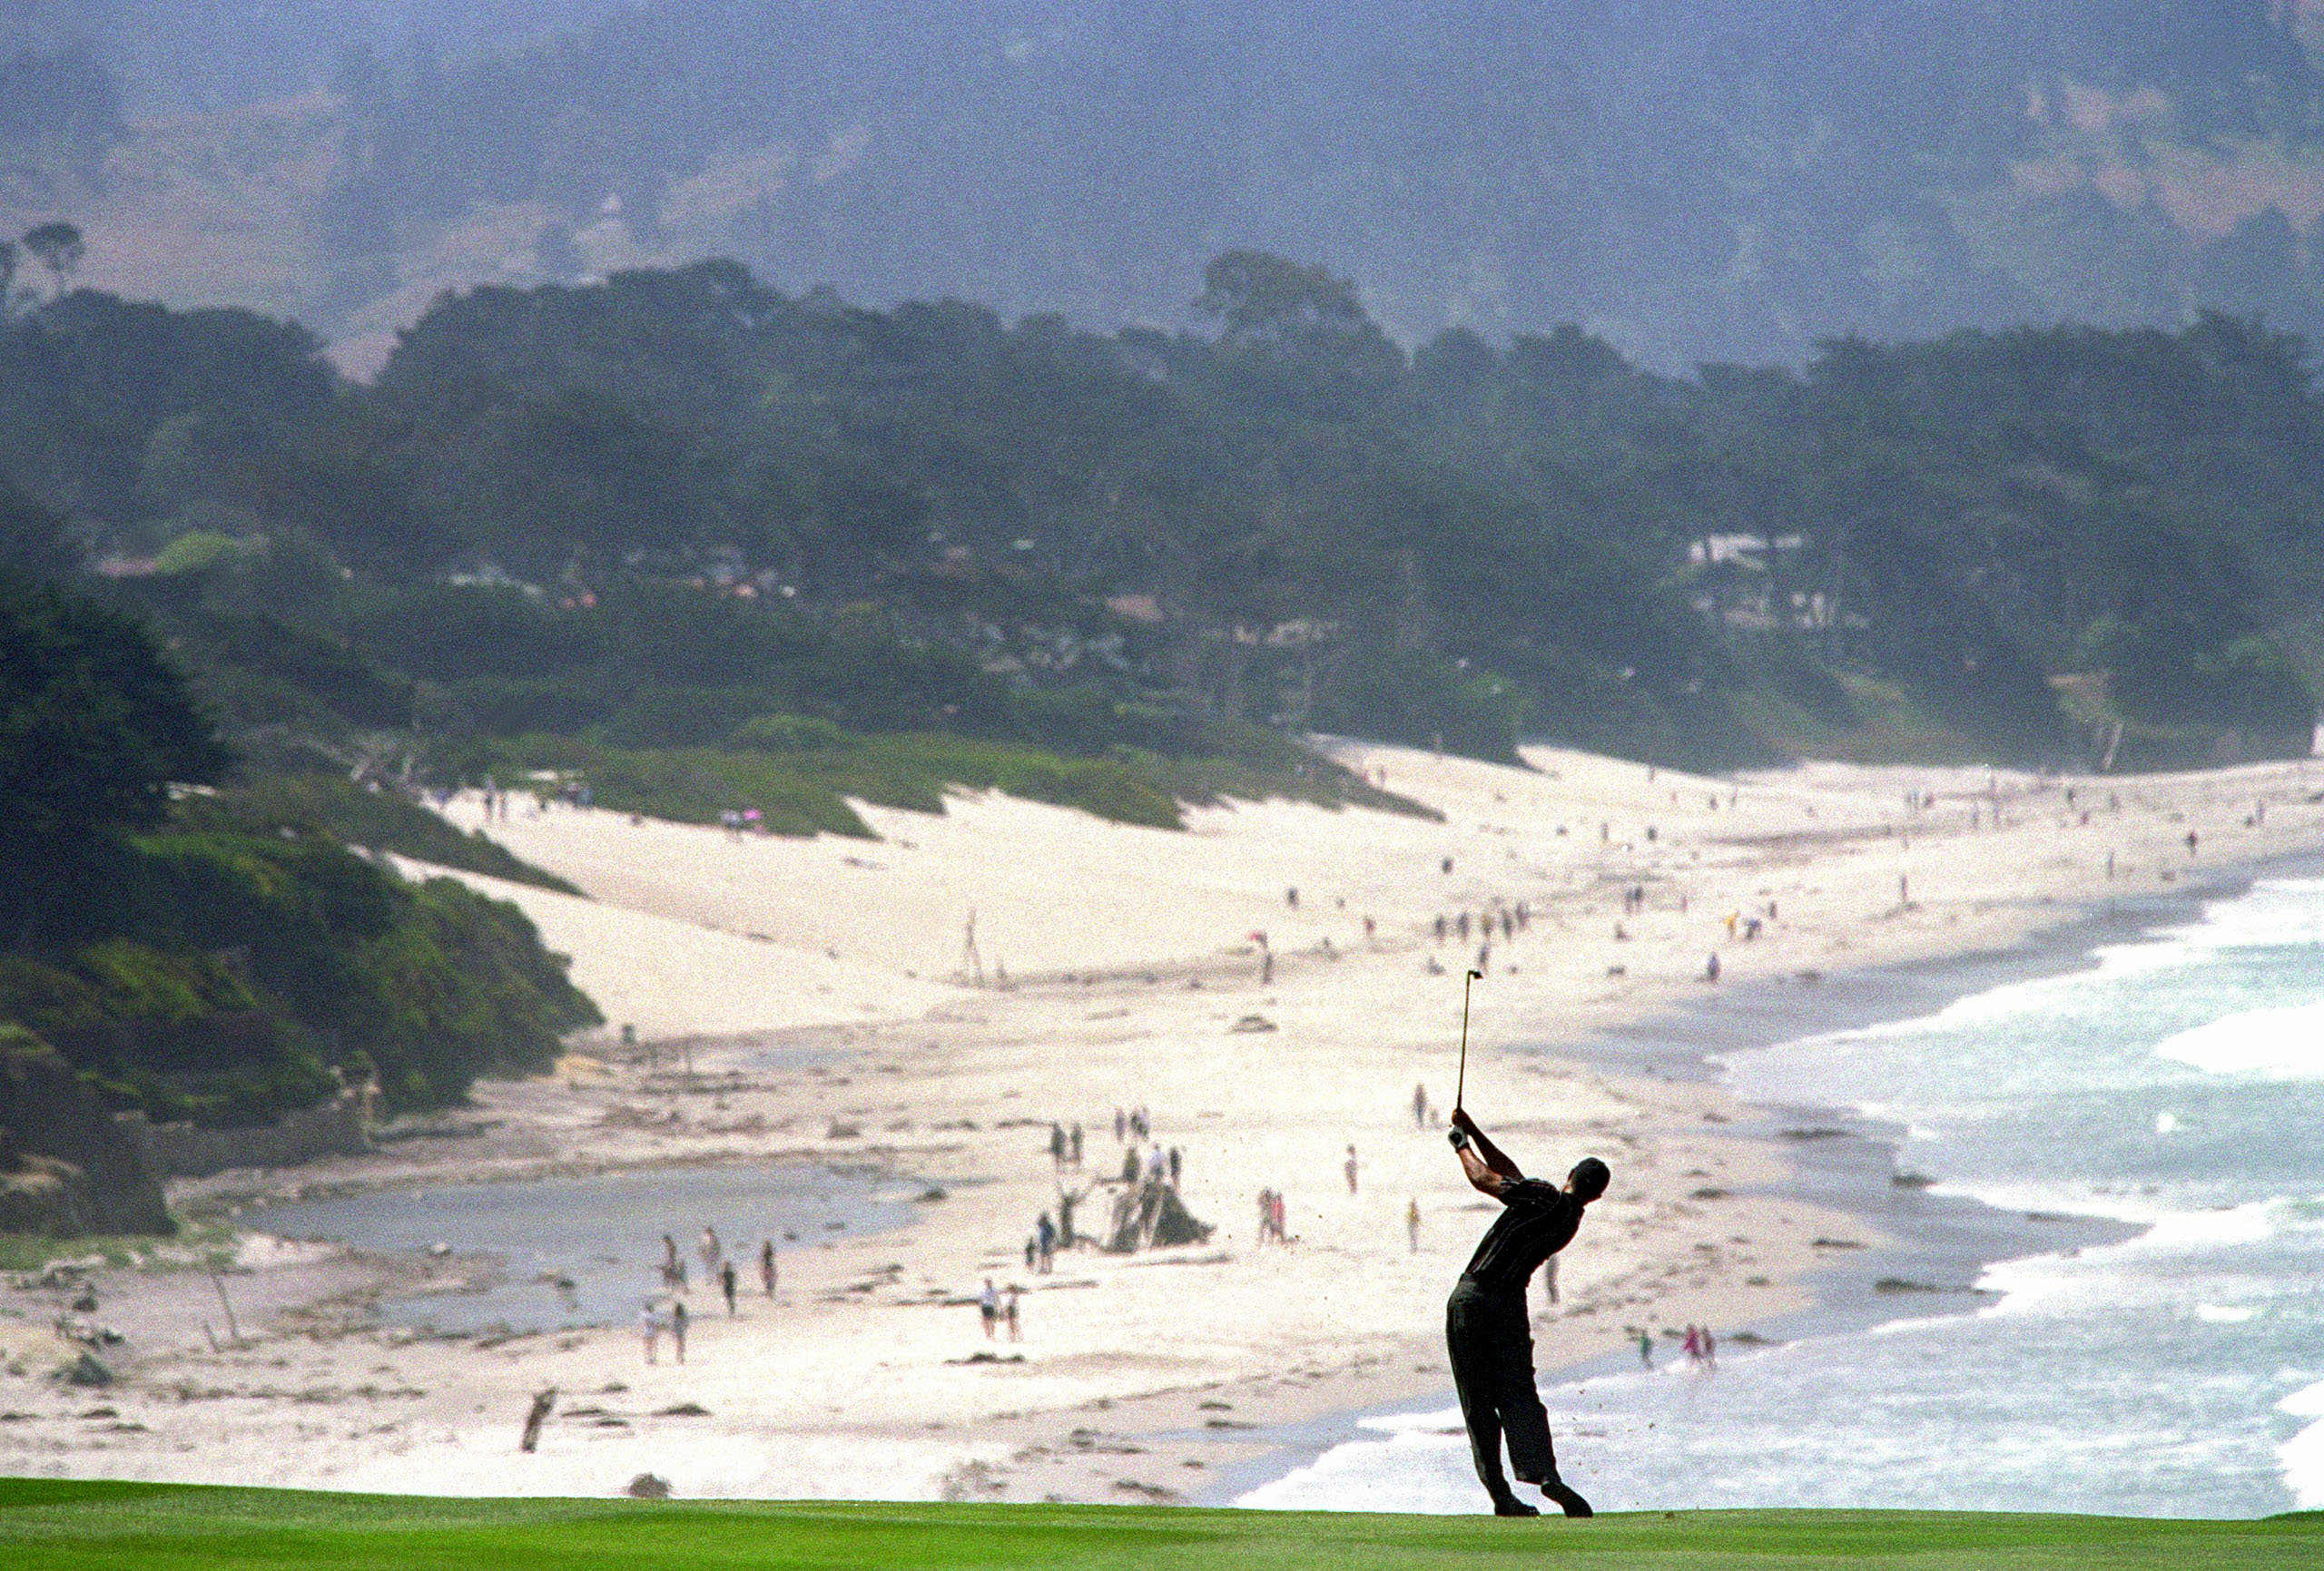 More than a century after the hypnotizing Northern California terrain caught the eye of a lovesick voyager, Tiger Woods also fell for its sightlines, leading to his historically dominant display at the 2000 U.S. Open. Photo by Jamie Squire/Getty Images